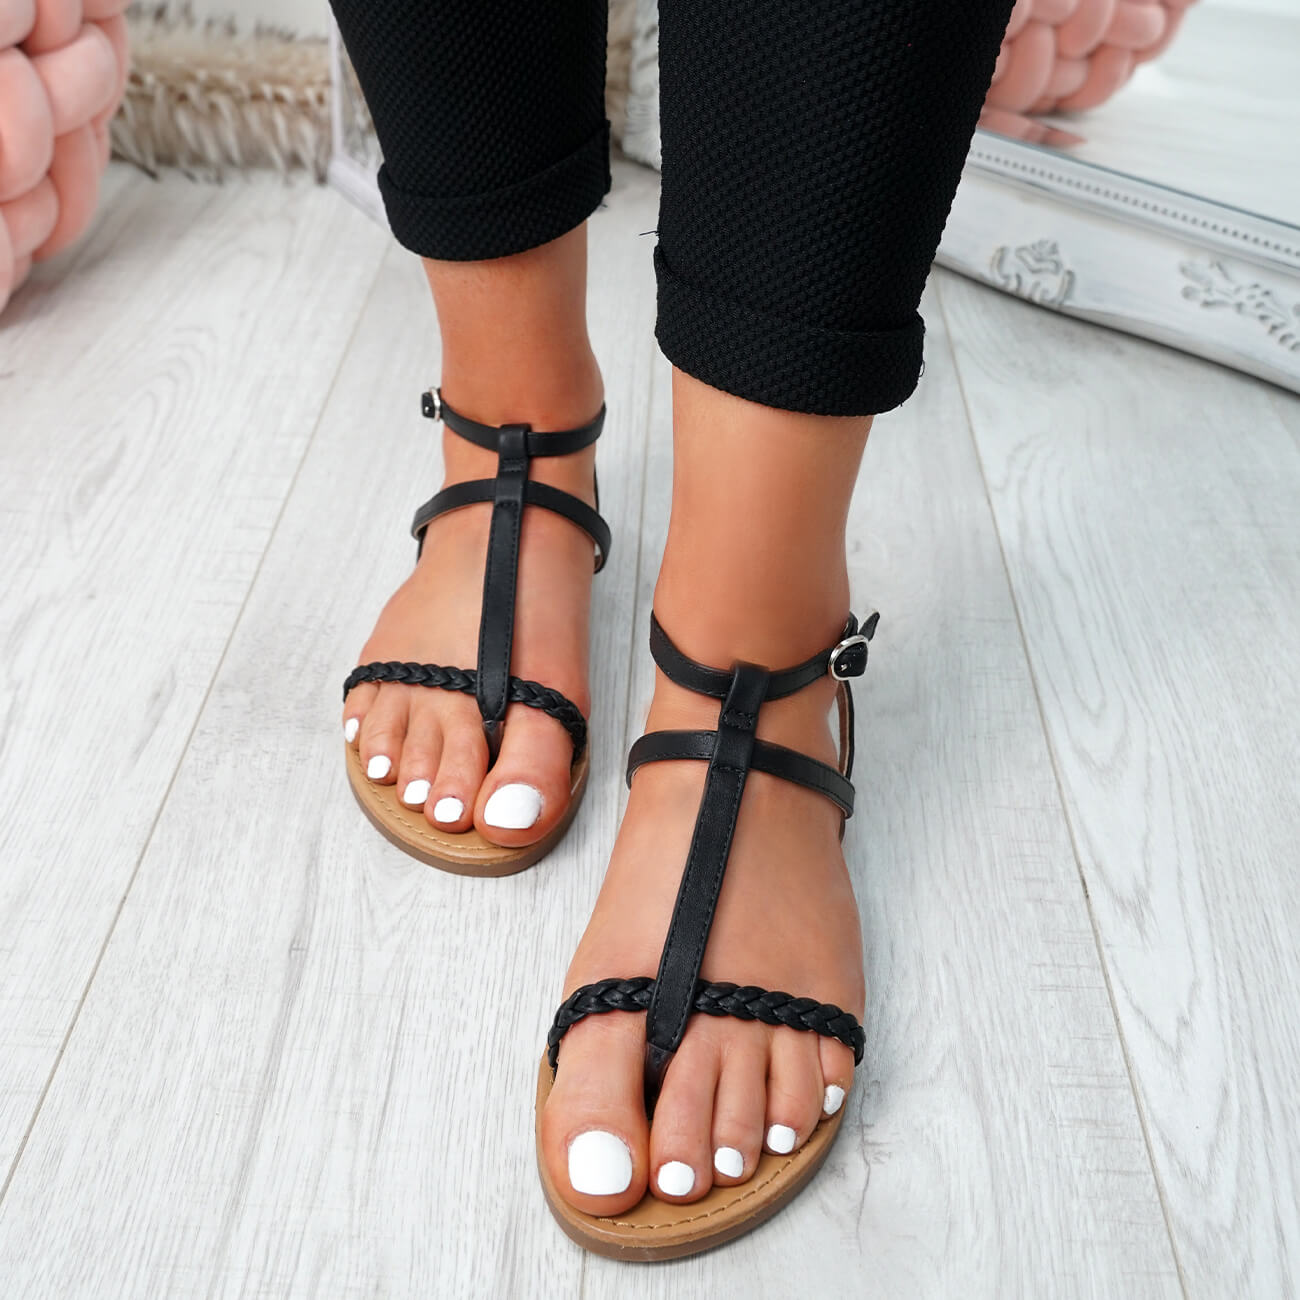 WOMENS-LADIES-T-STRAP-FLAT-SANDALS-BUCKLE-CASUAL-SUMMER-SHOES-SIZE-UK thumbnail 7